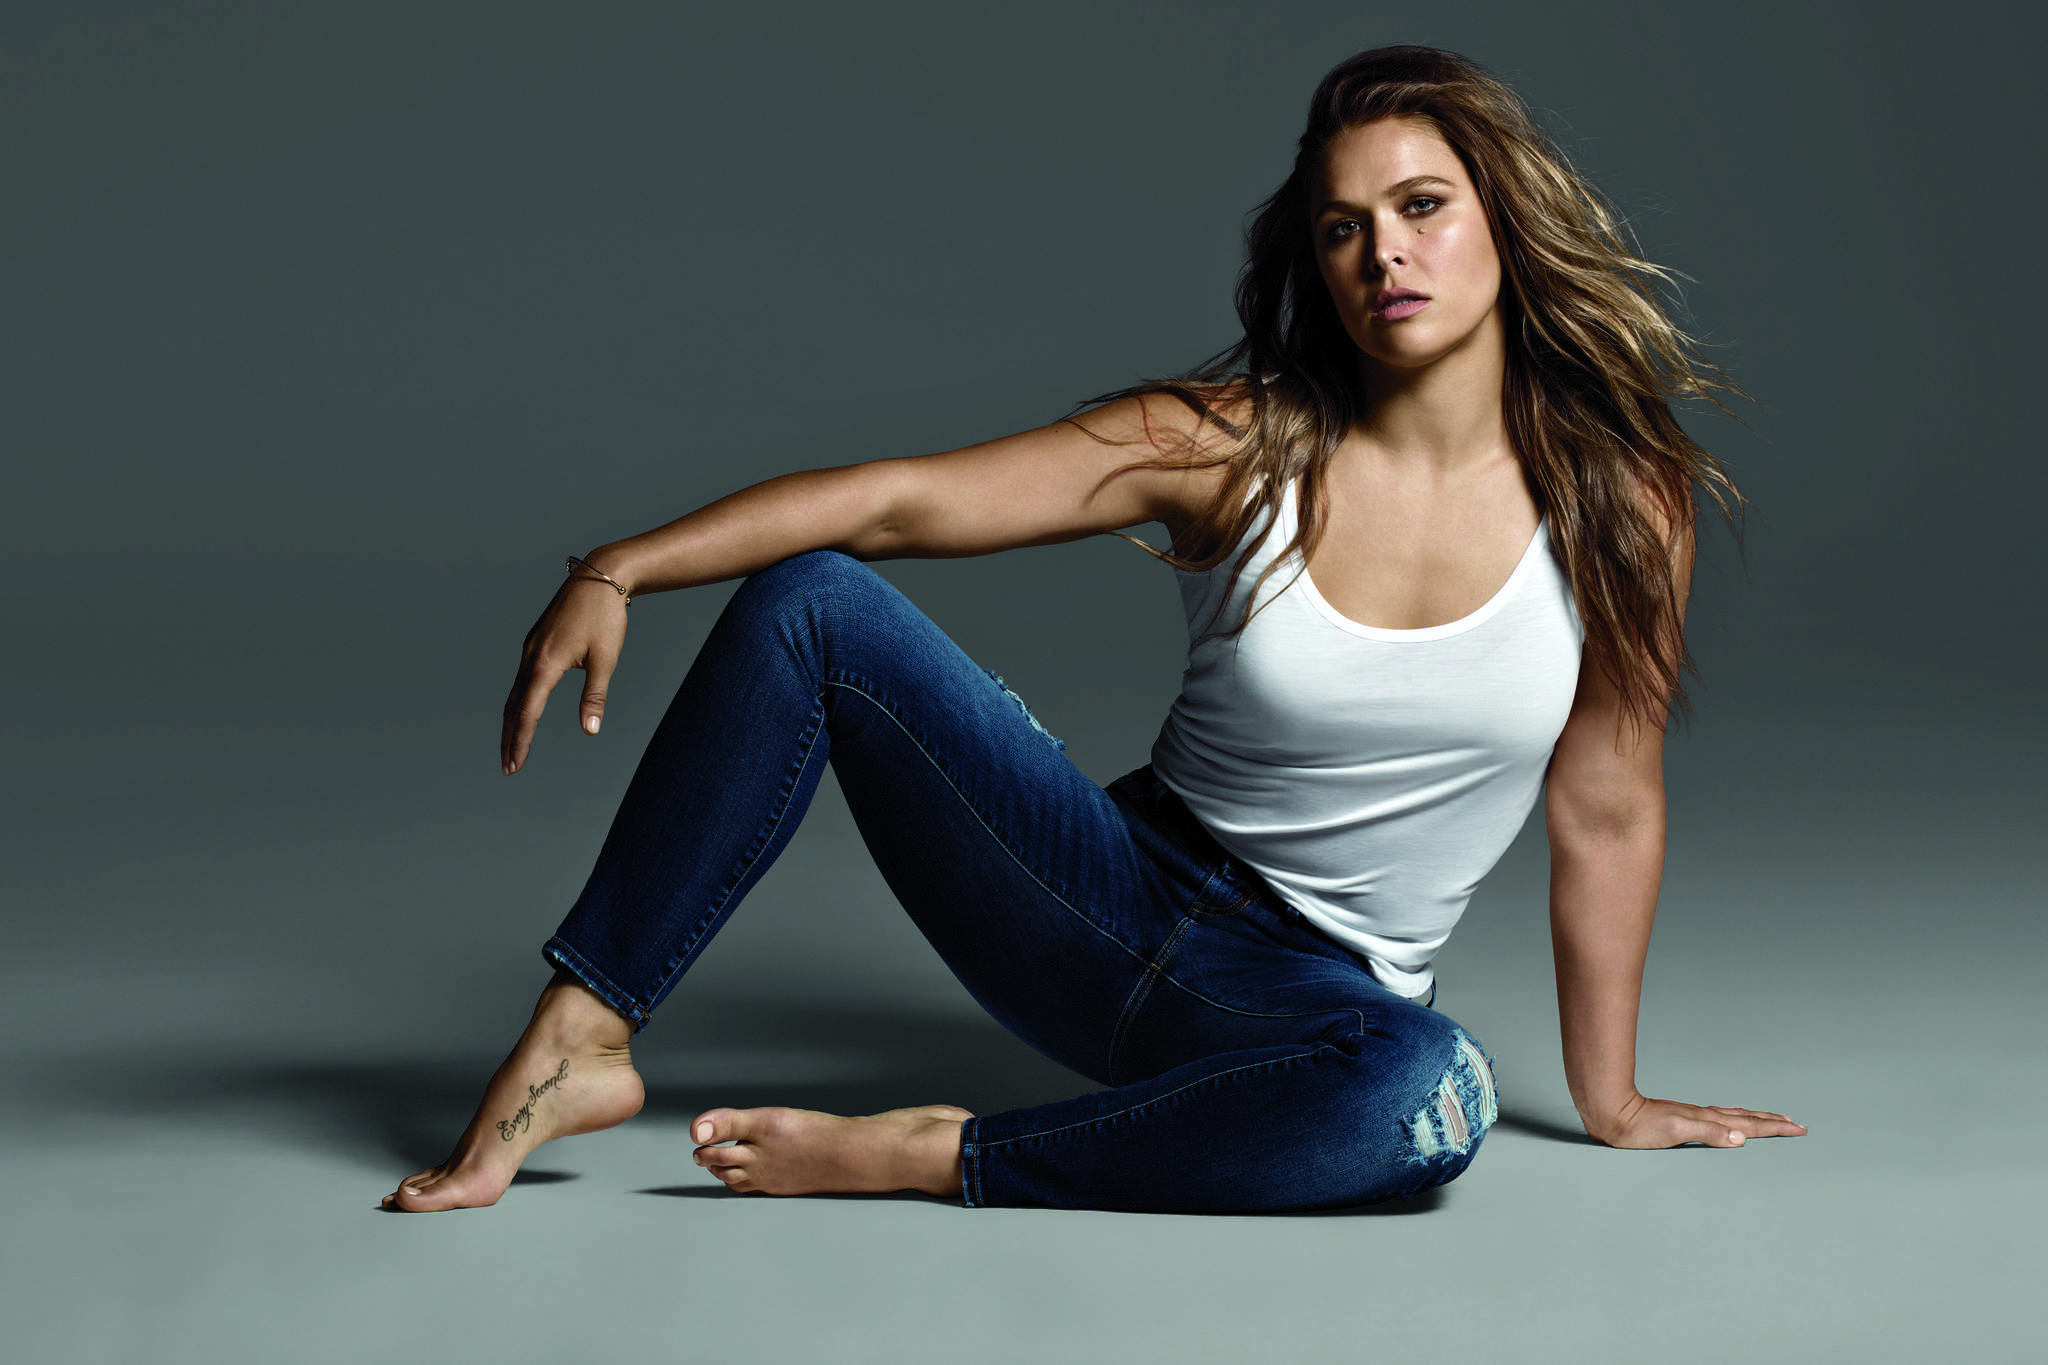 Here Is Ronda Rousey's Exact Diet and Exercise Plan for You toCopy Here Is Ronda Rousey's Exact Diet and Exercise Plan for You toCopy new images